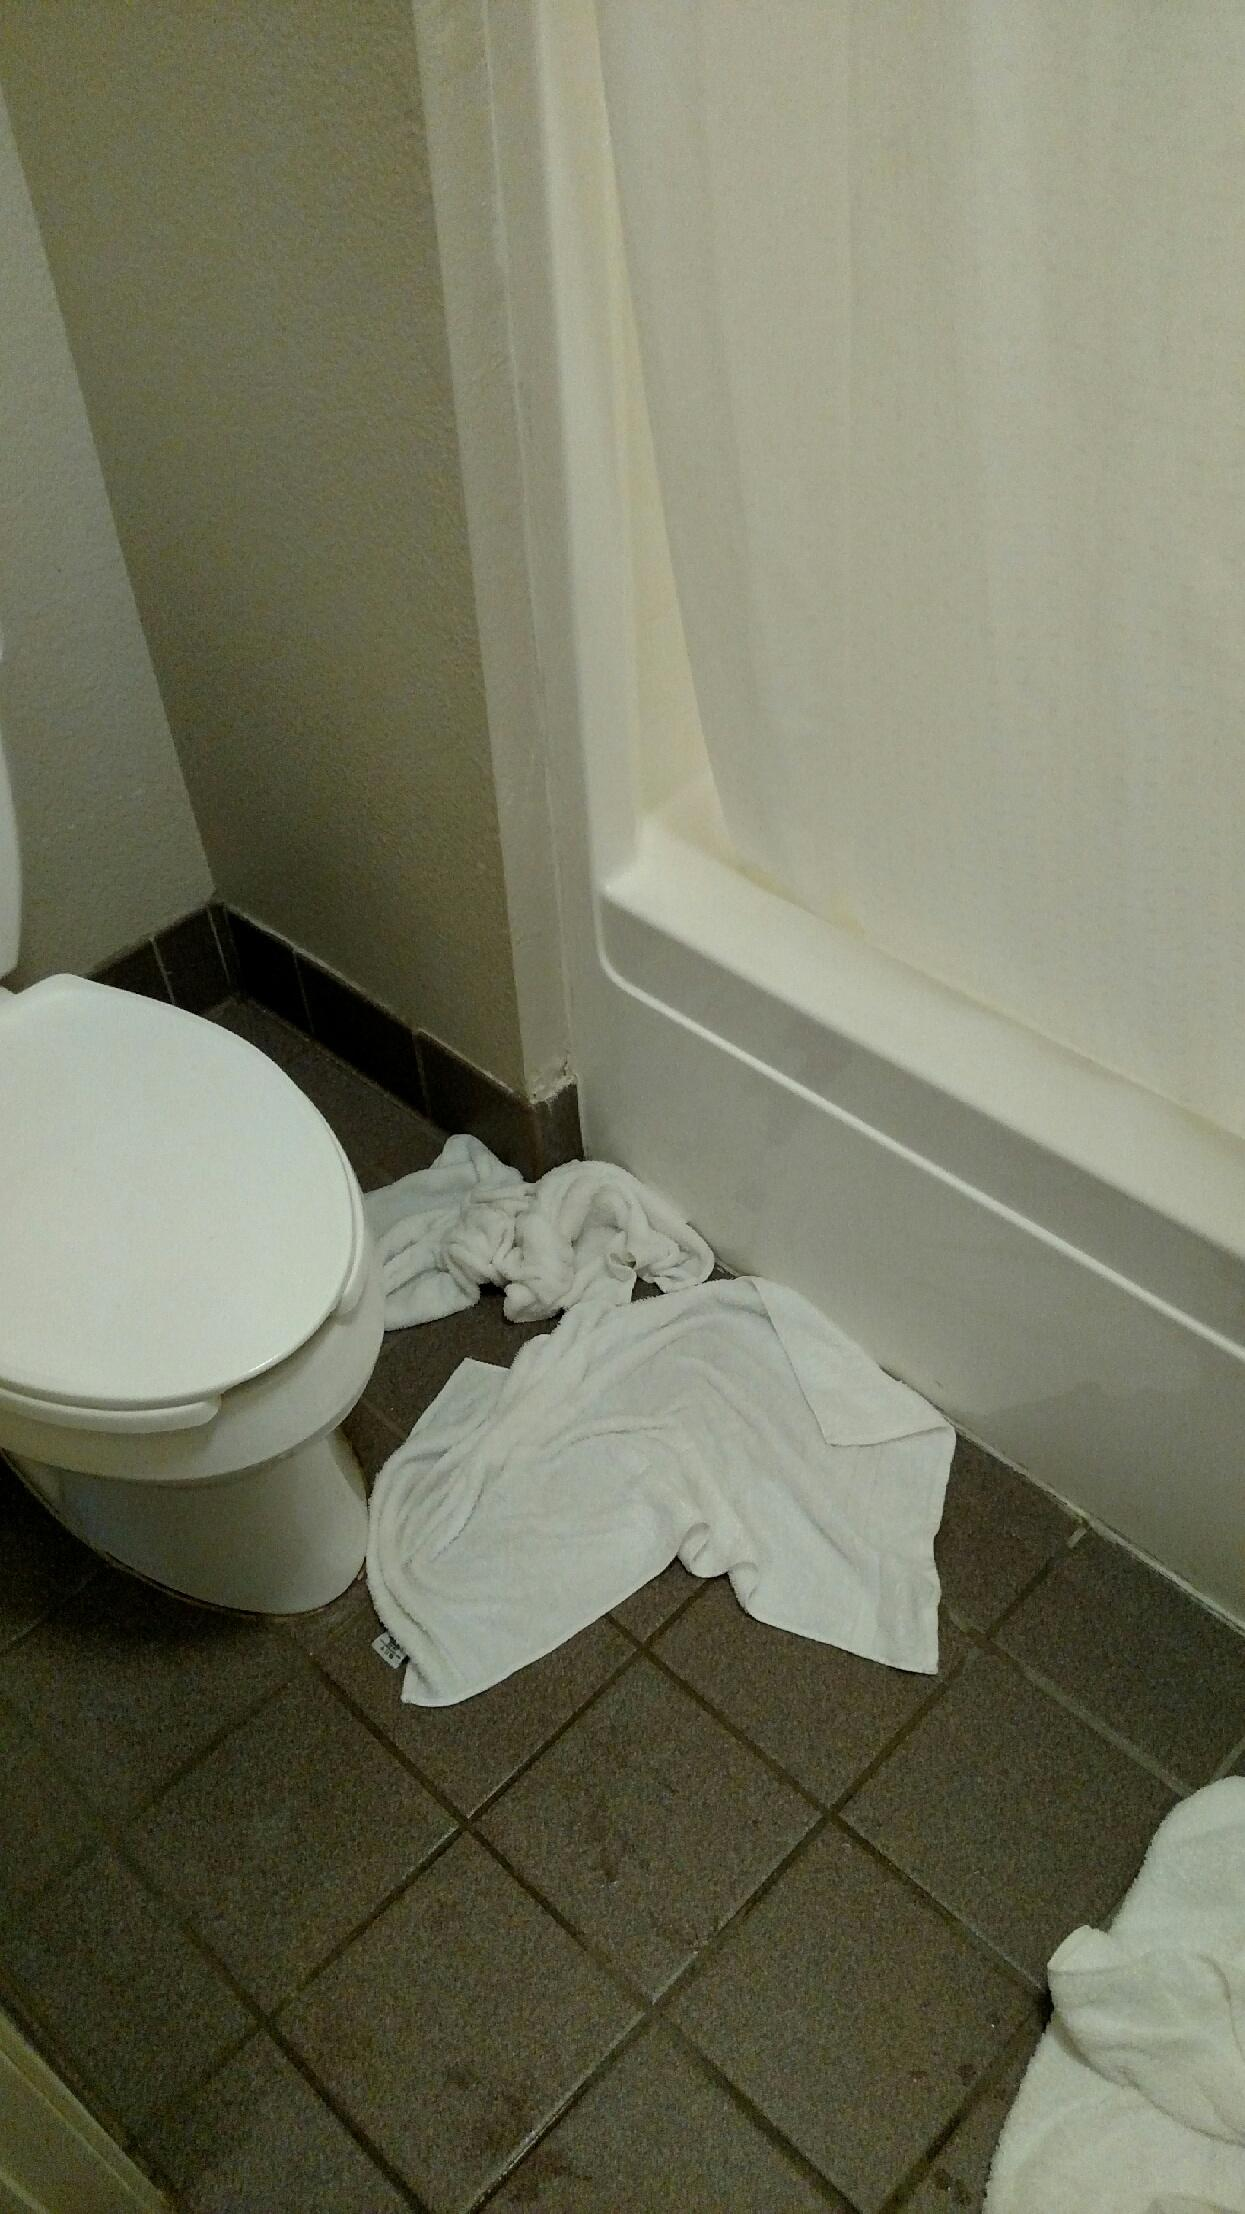 Had to put towels on the floor to keep from puddling up the entire bathroom.